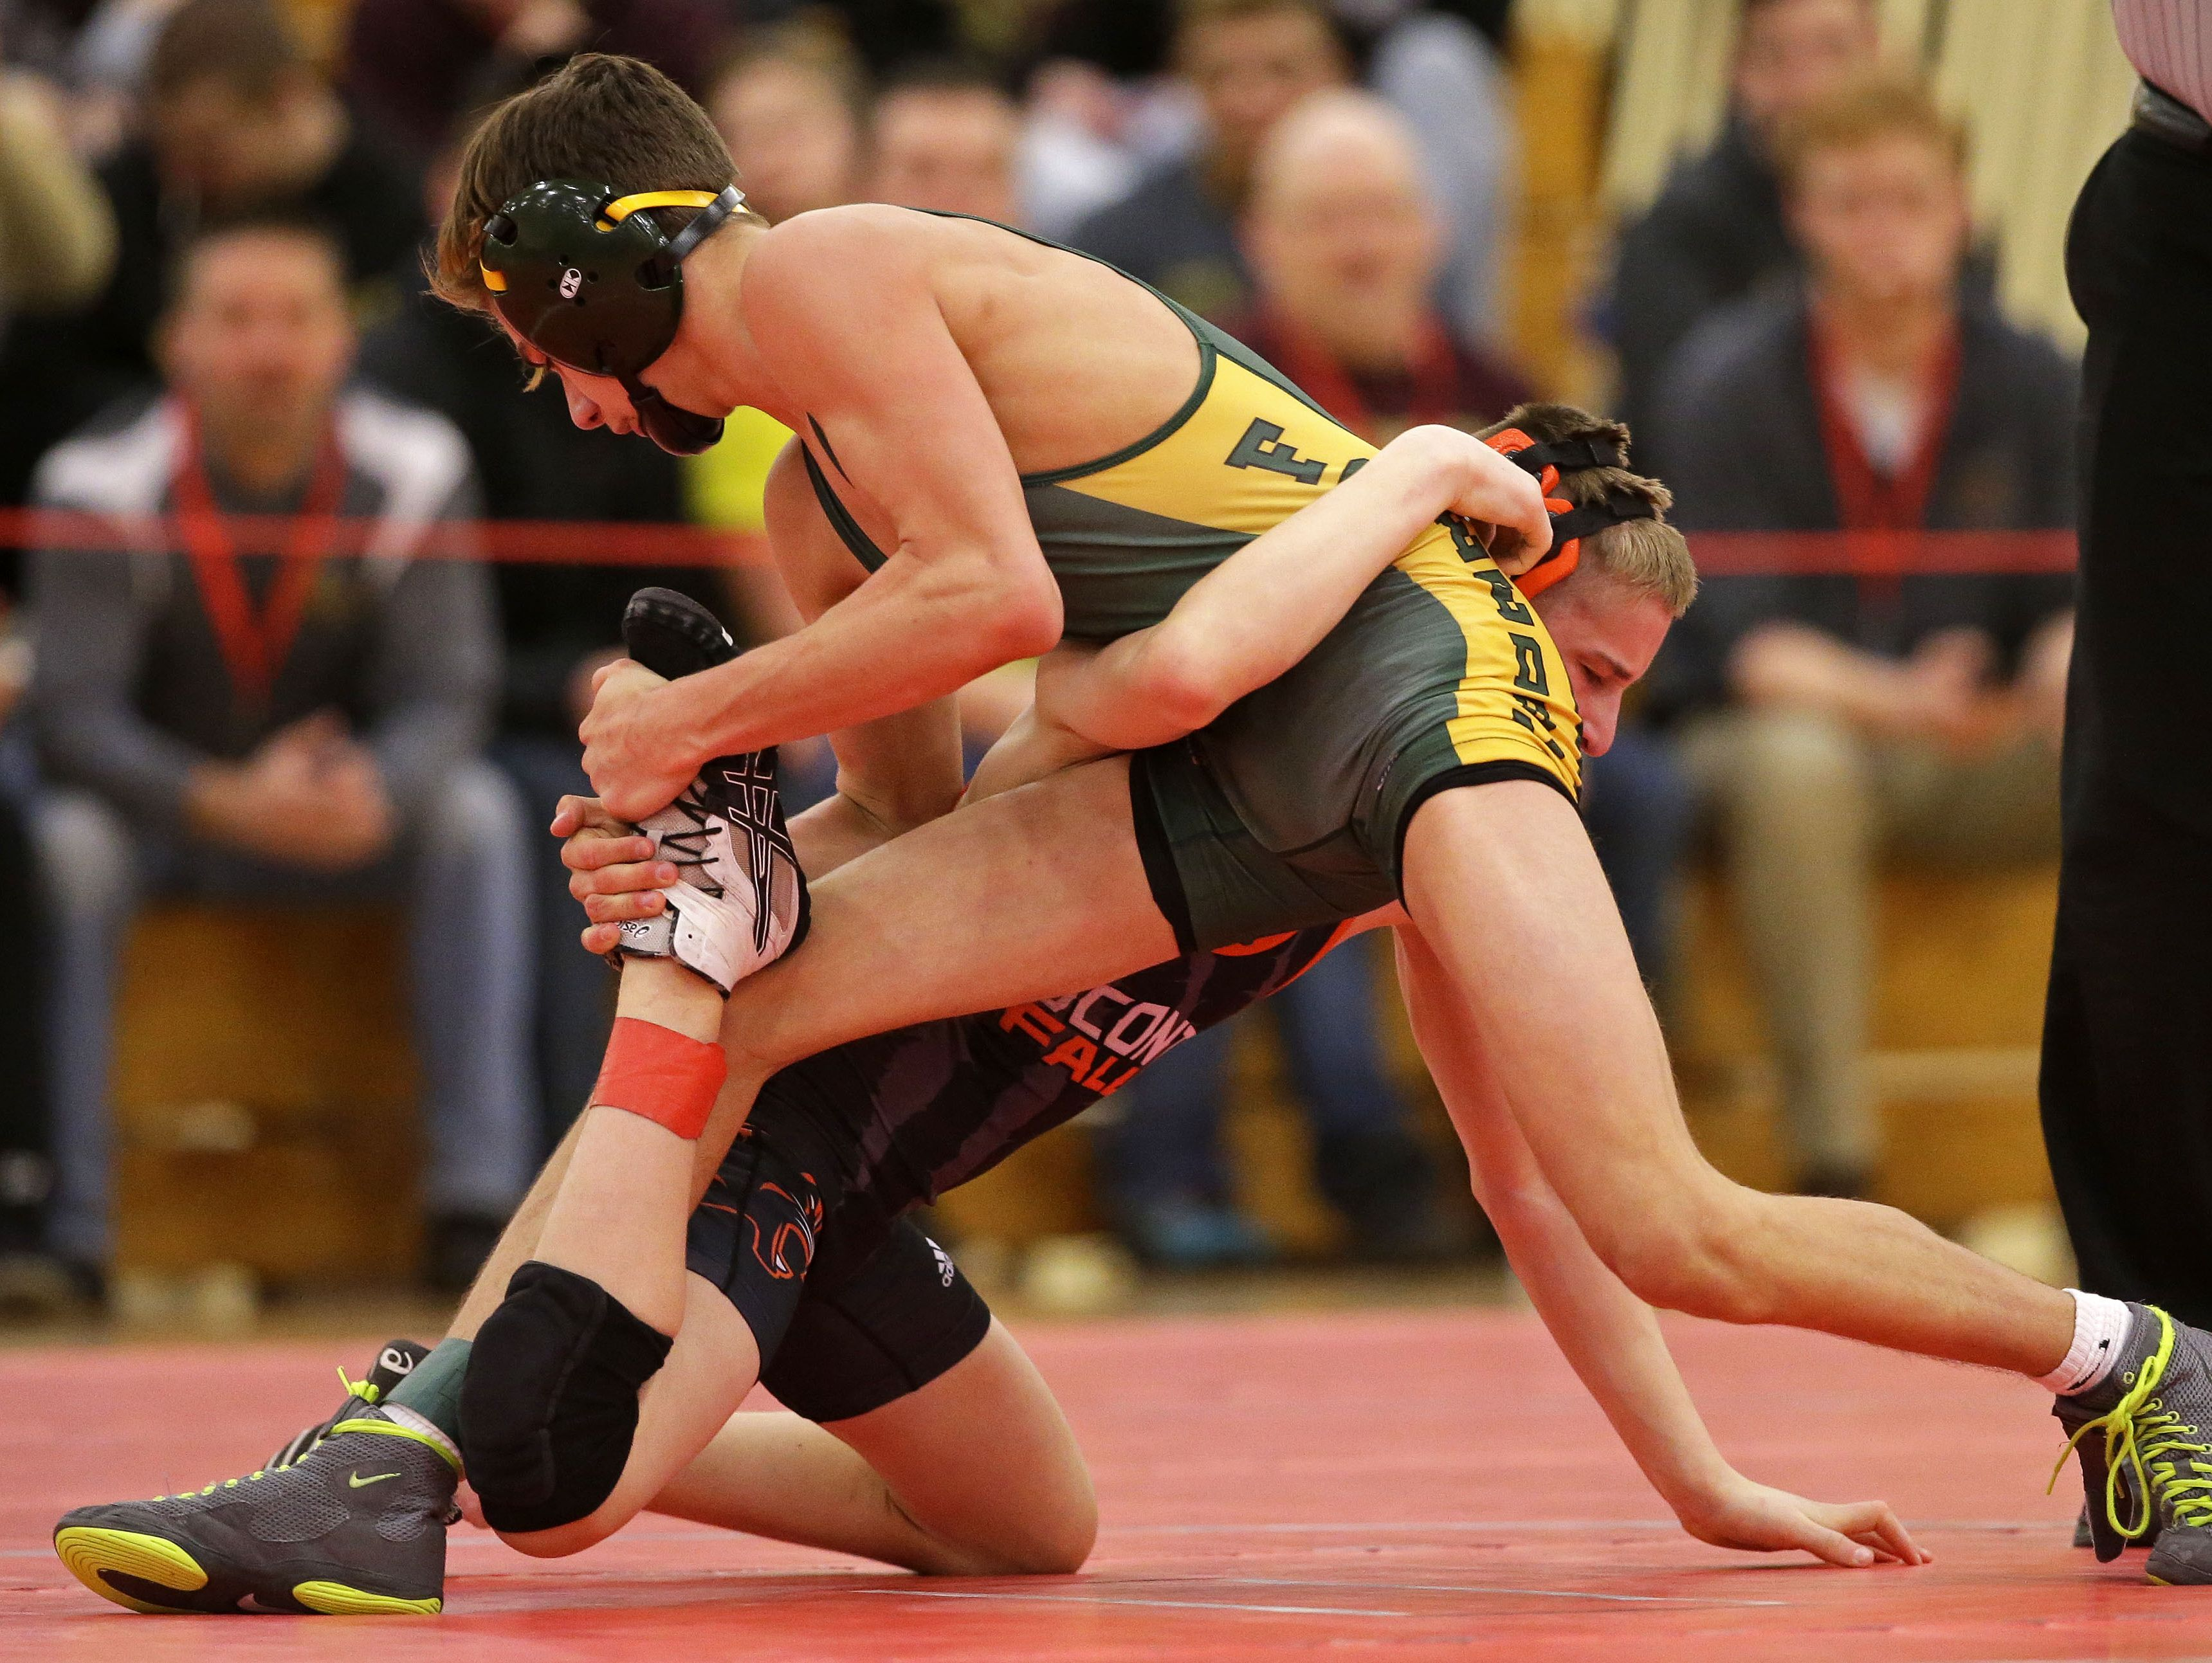 Tyler Budz of Oconto Falls wrestles Zach Lahay of Freedom in a 106 weight class 3rd place match during the WIAA Division 2 wrestling sectional Saturday, February 18, 2017, at Seymour High School in Seymour, Wisconsin. Ron Page/USA TODAY NETWORK-Wisconsin